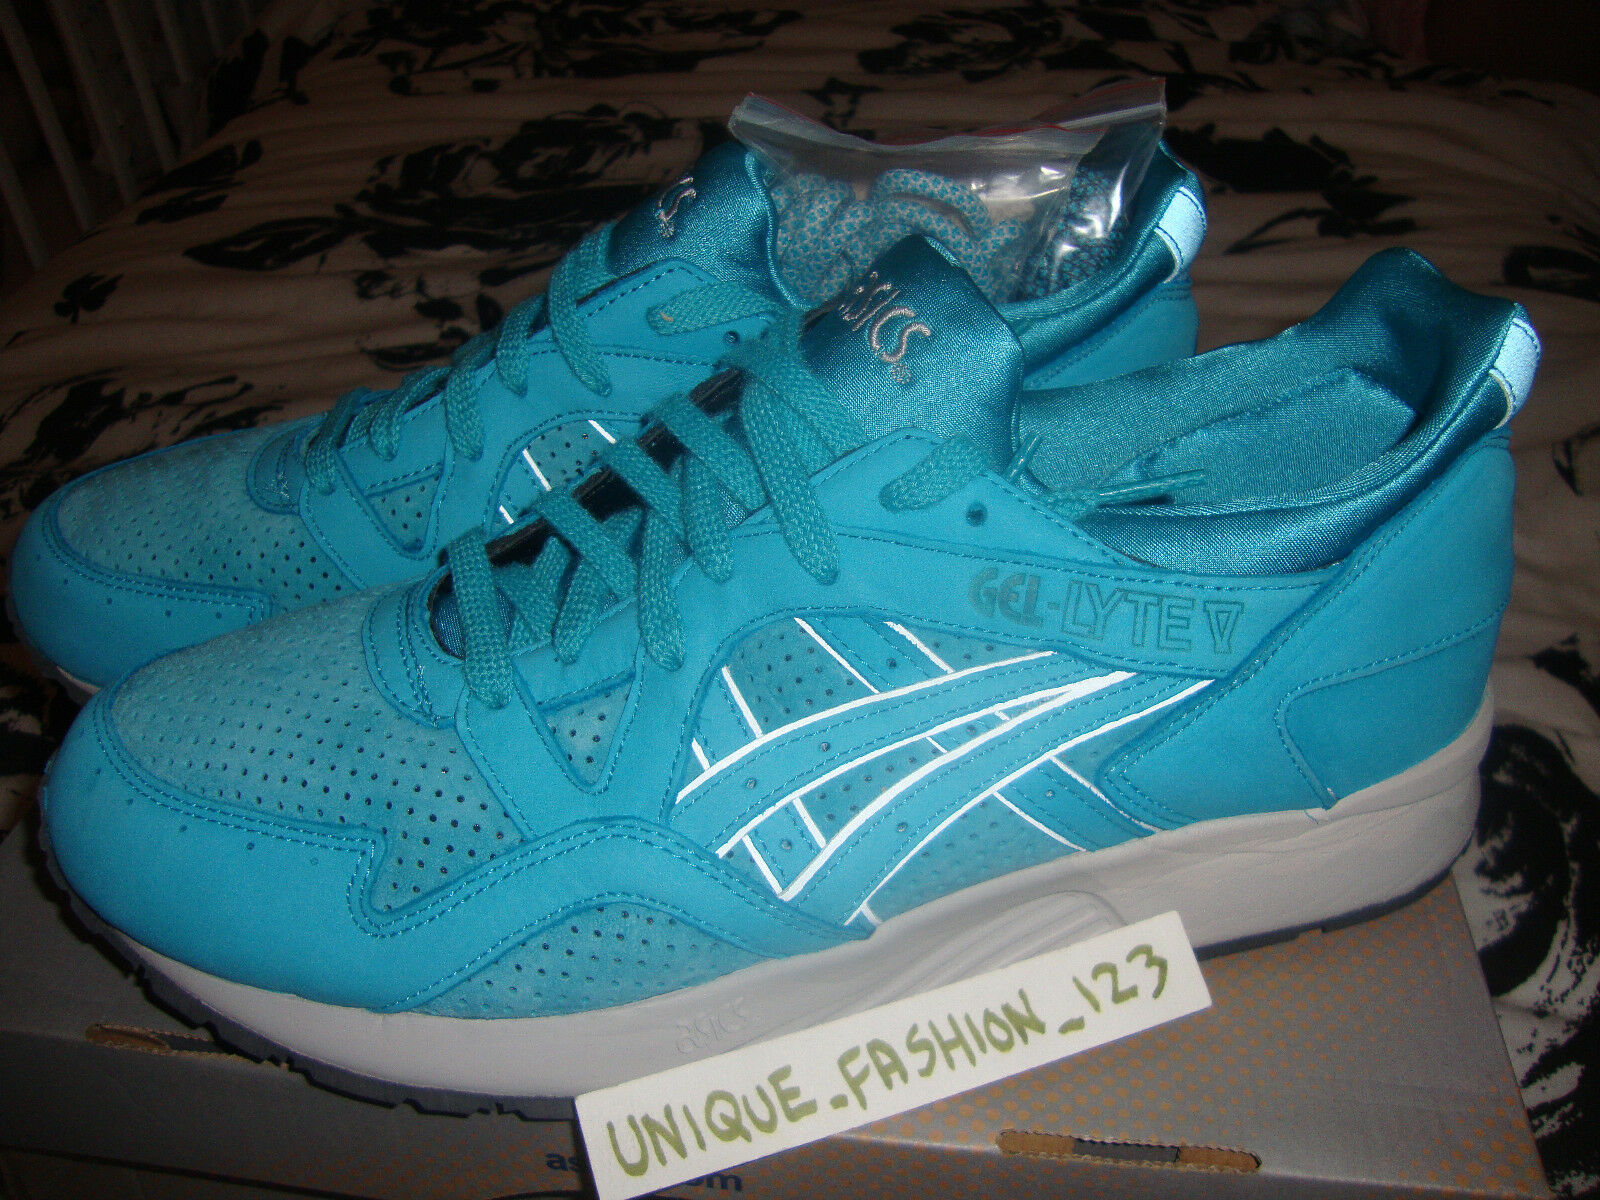 ASICS GEL LYTE V 5 RONNIE FIEG KITH COVE US 11.5 UK 10.5 45 ROSE Sage Comme neuf or